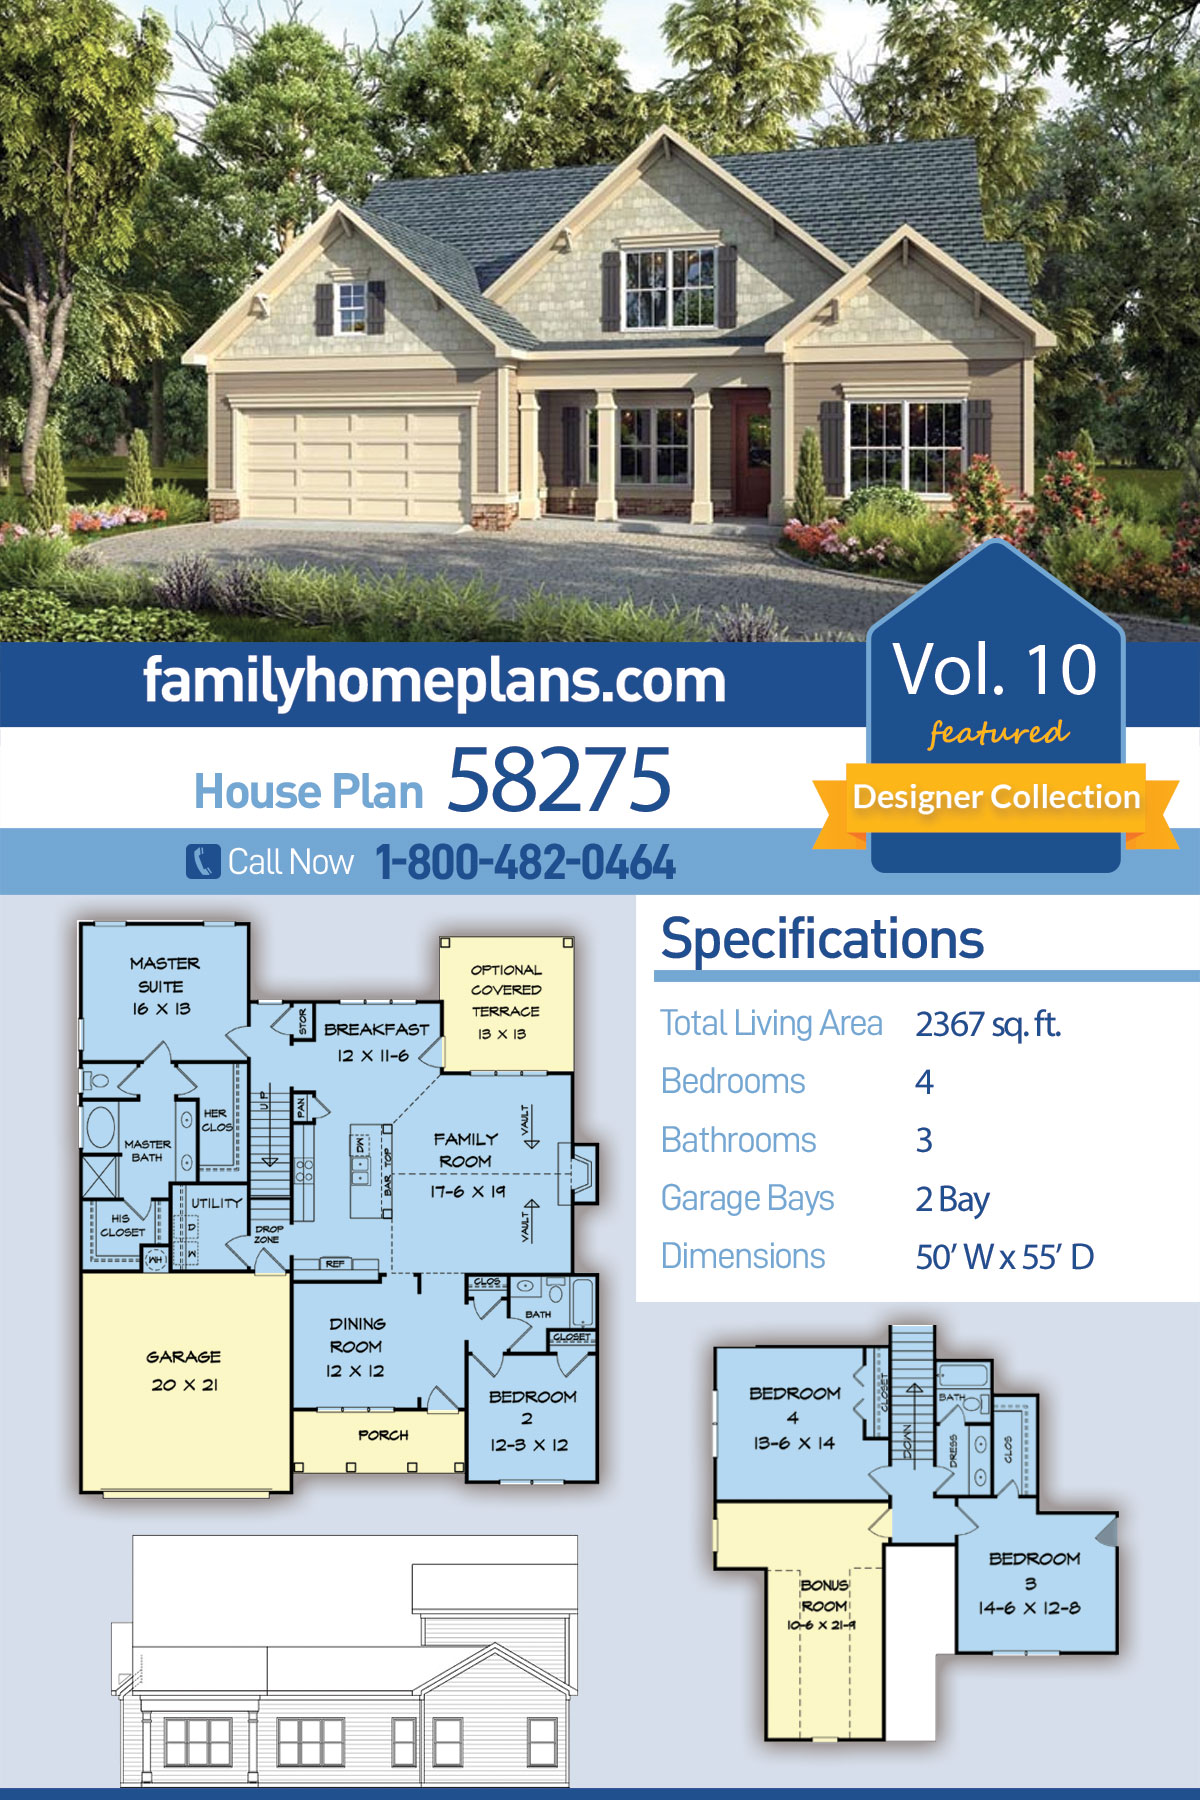 Craftsman , Traditional House Plan 58275 with 4 Beds, 3 Baths, 2 Car Garage